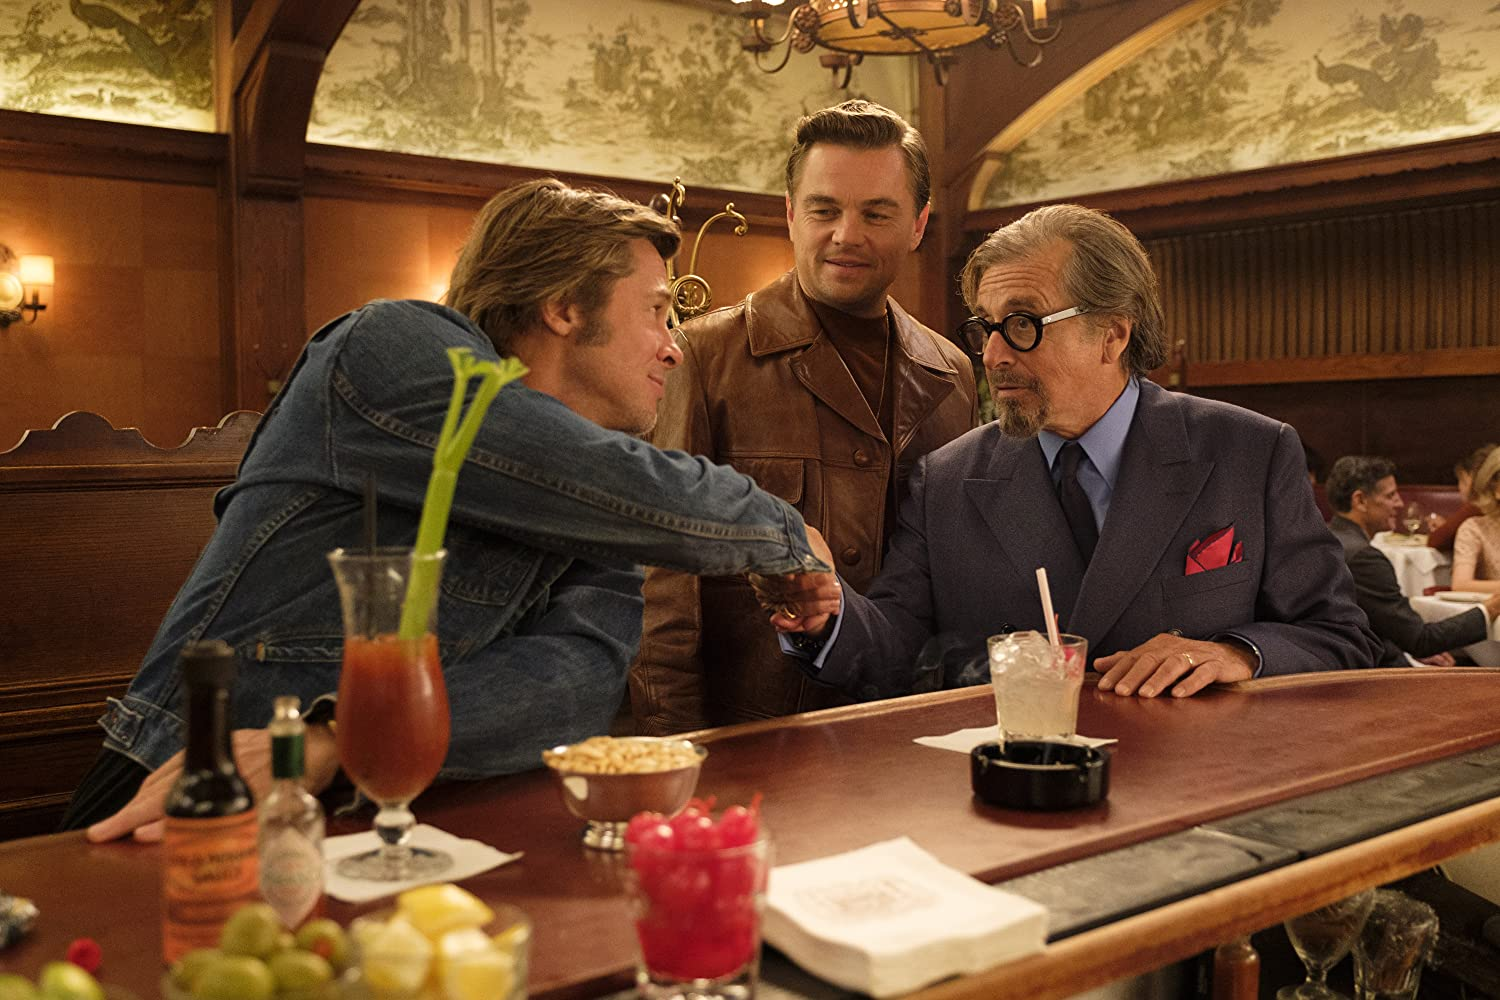 Brad Pitt, Leonardo DiCaprio, and Al Pacino in Once Upon a Time ... in Hollywood (2019)